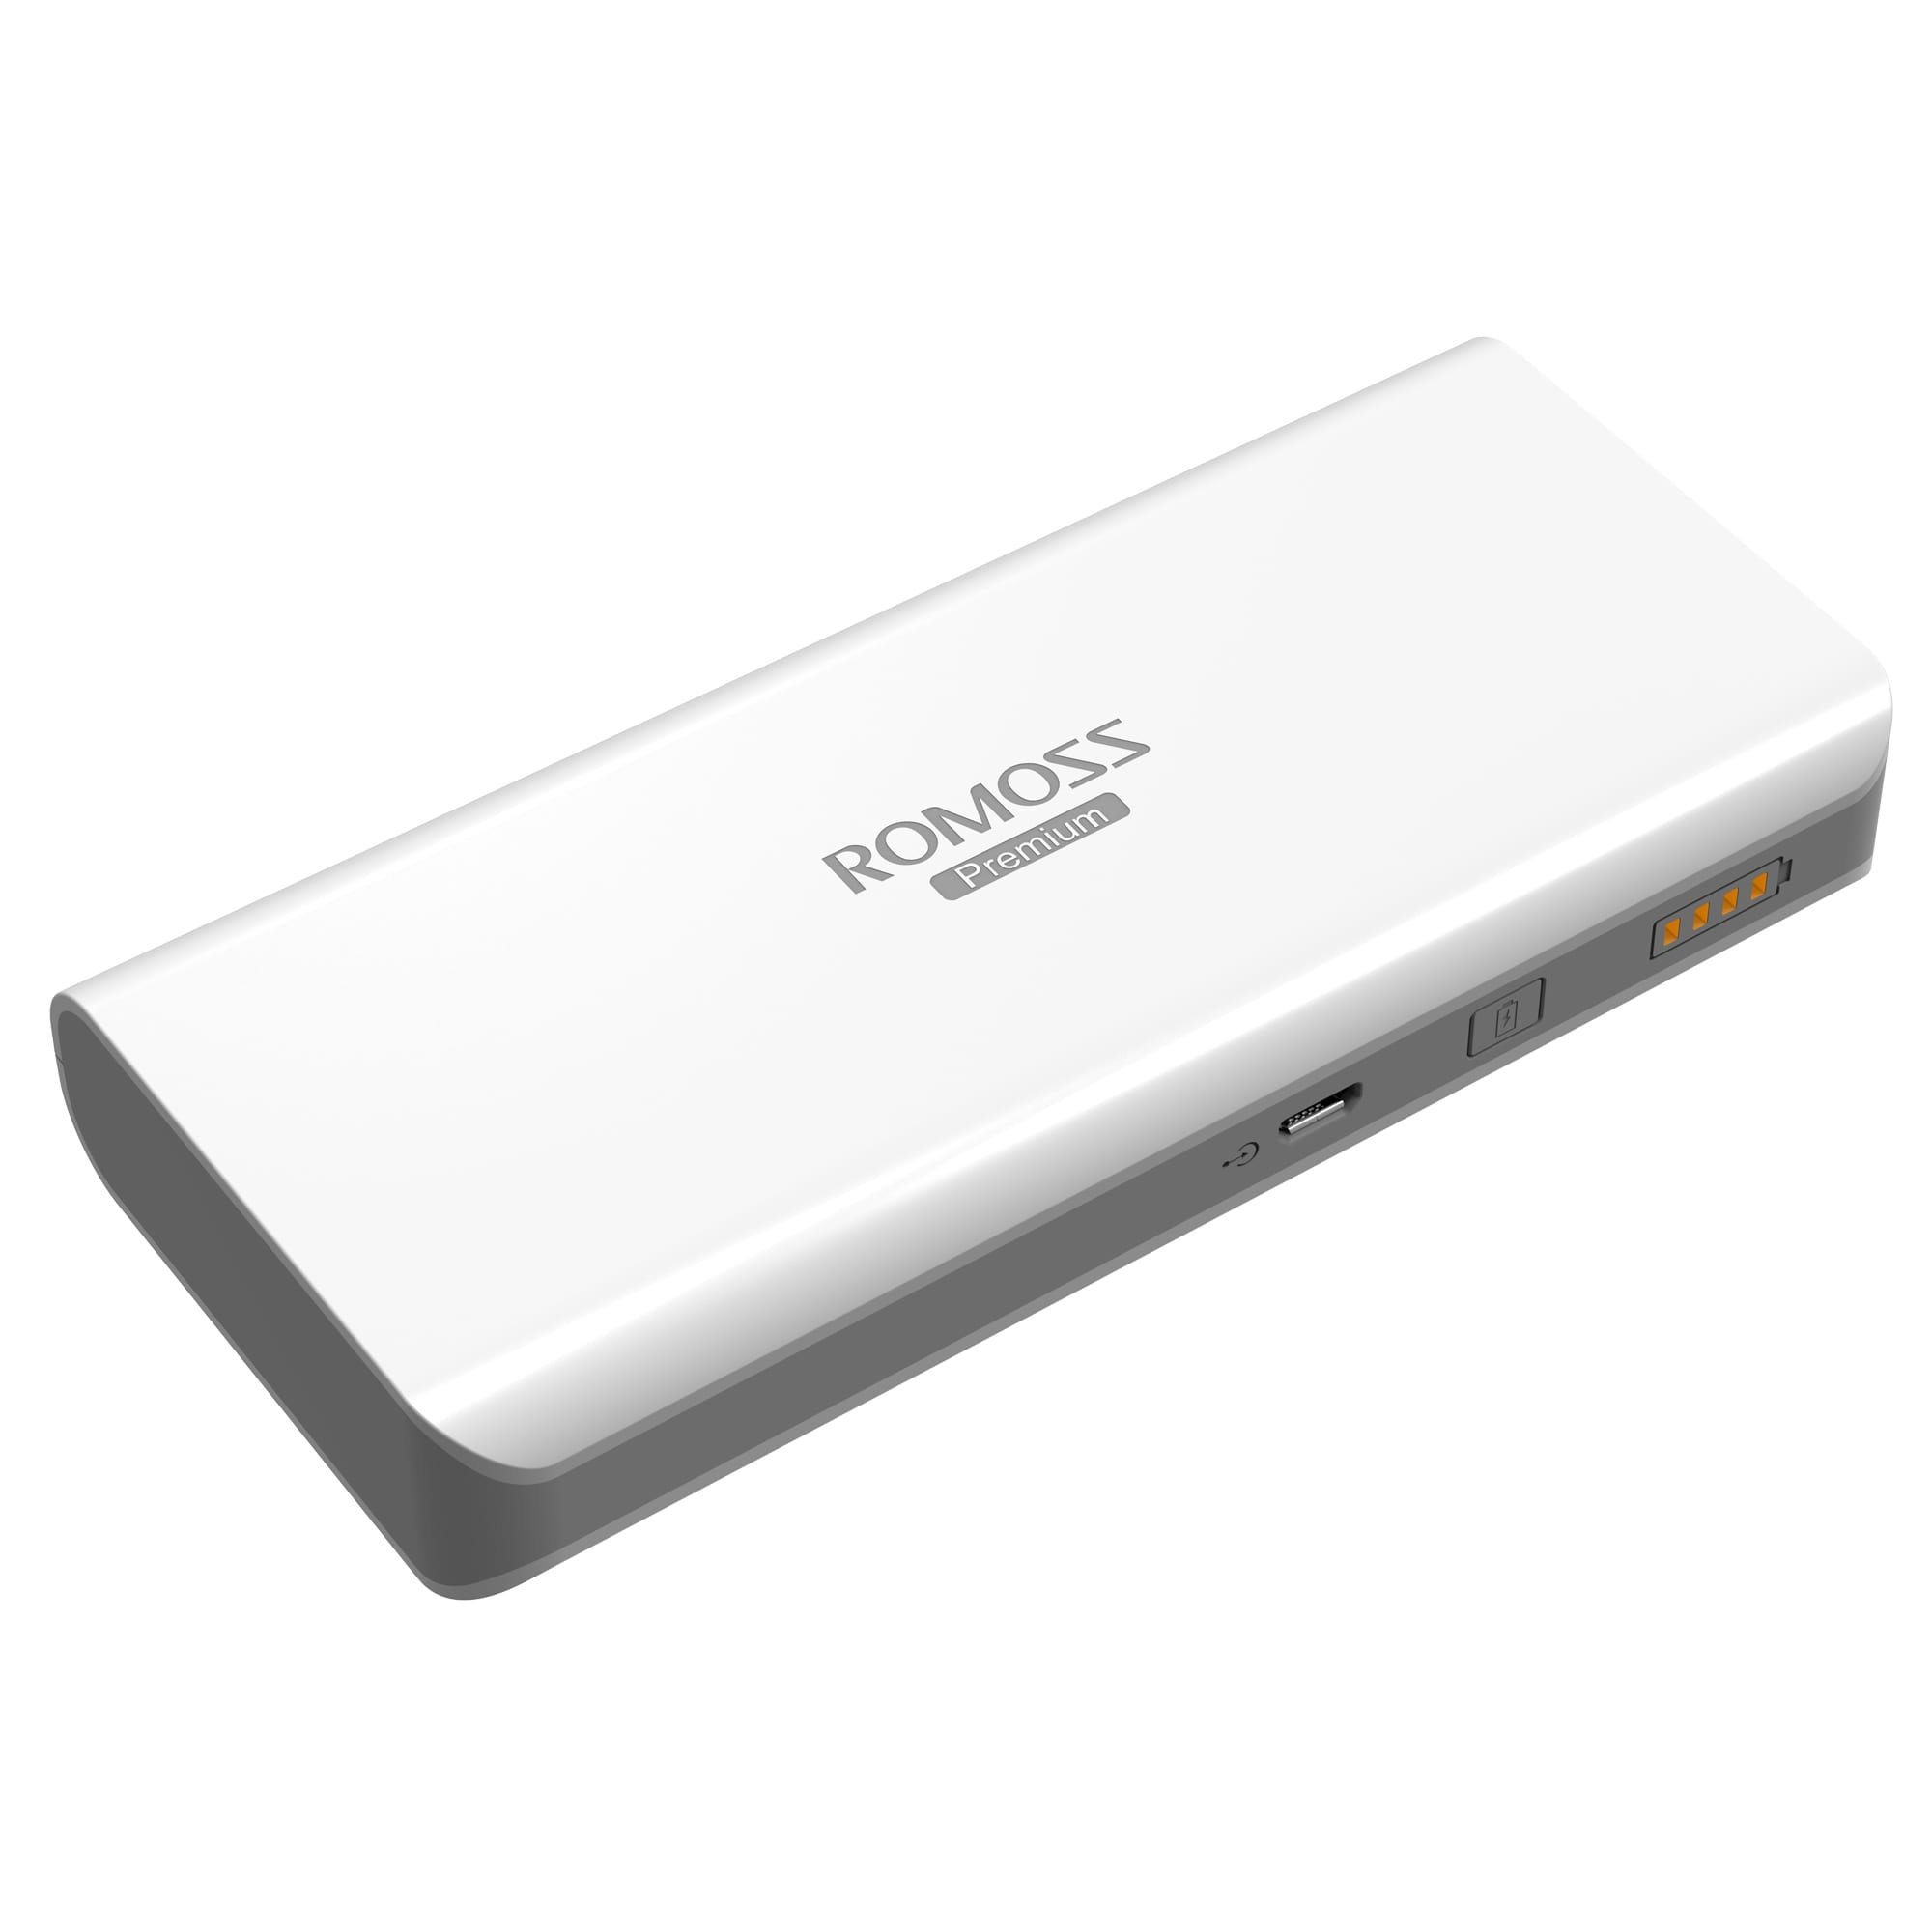 Transparant Zeil Gamma Romoss Sailing5 13000mah Power Bank Syntech